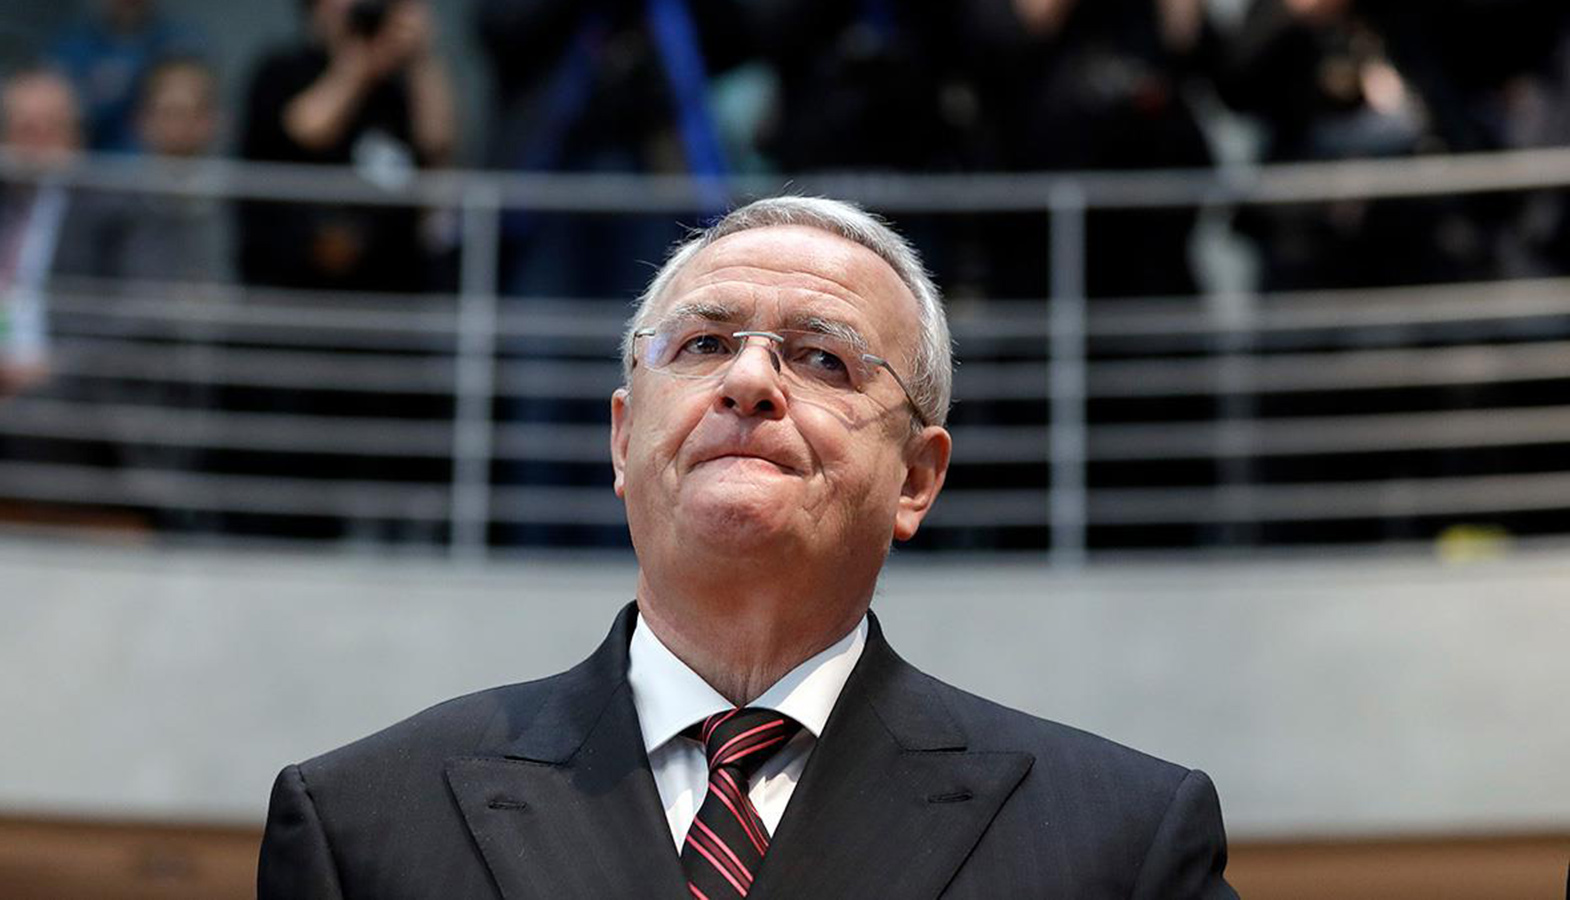 The Former Head Of Volkswagen Martin Winterkorn Will Appear In Court In The Case Of The Diesel Scandal